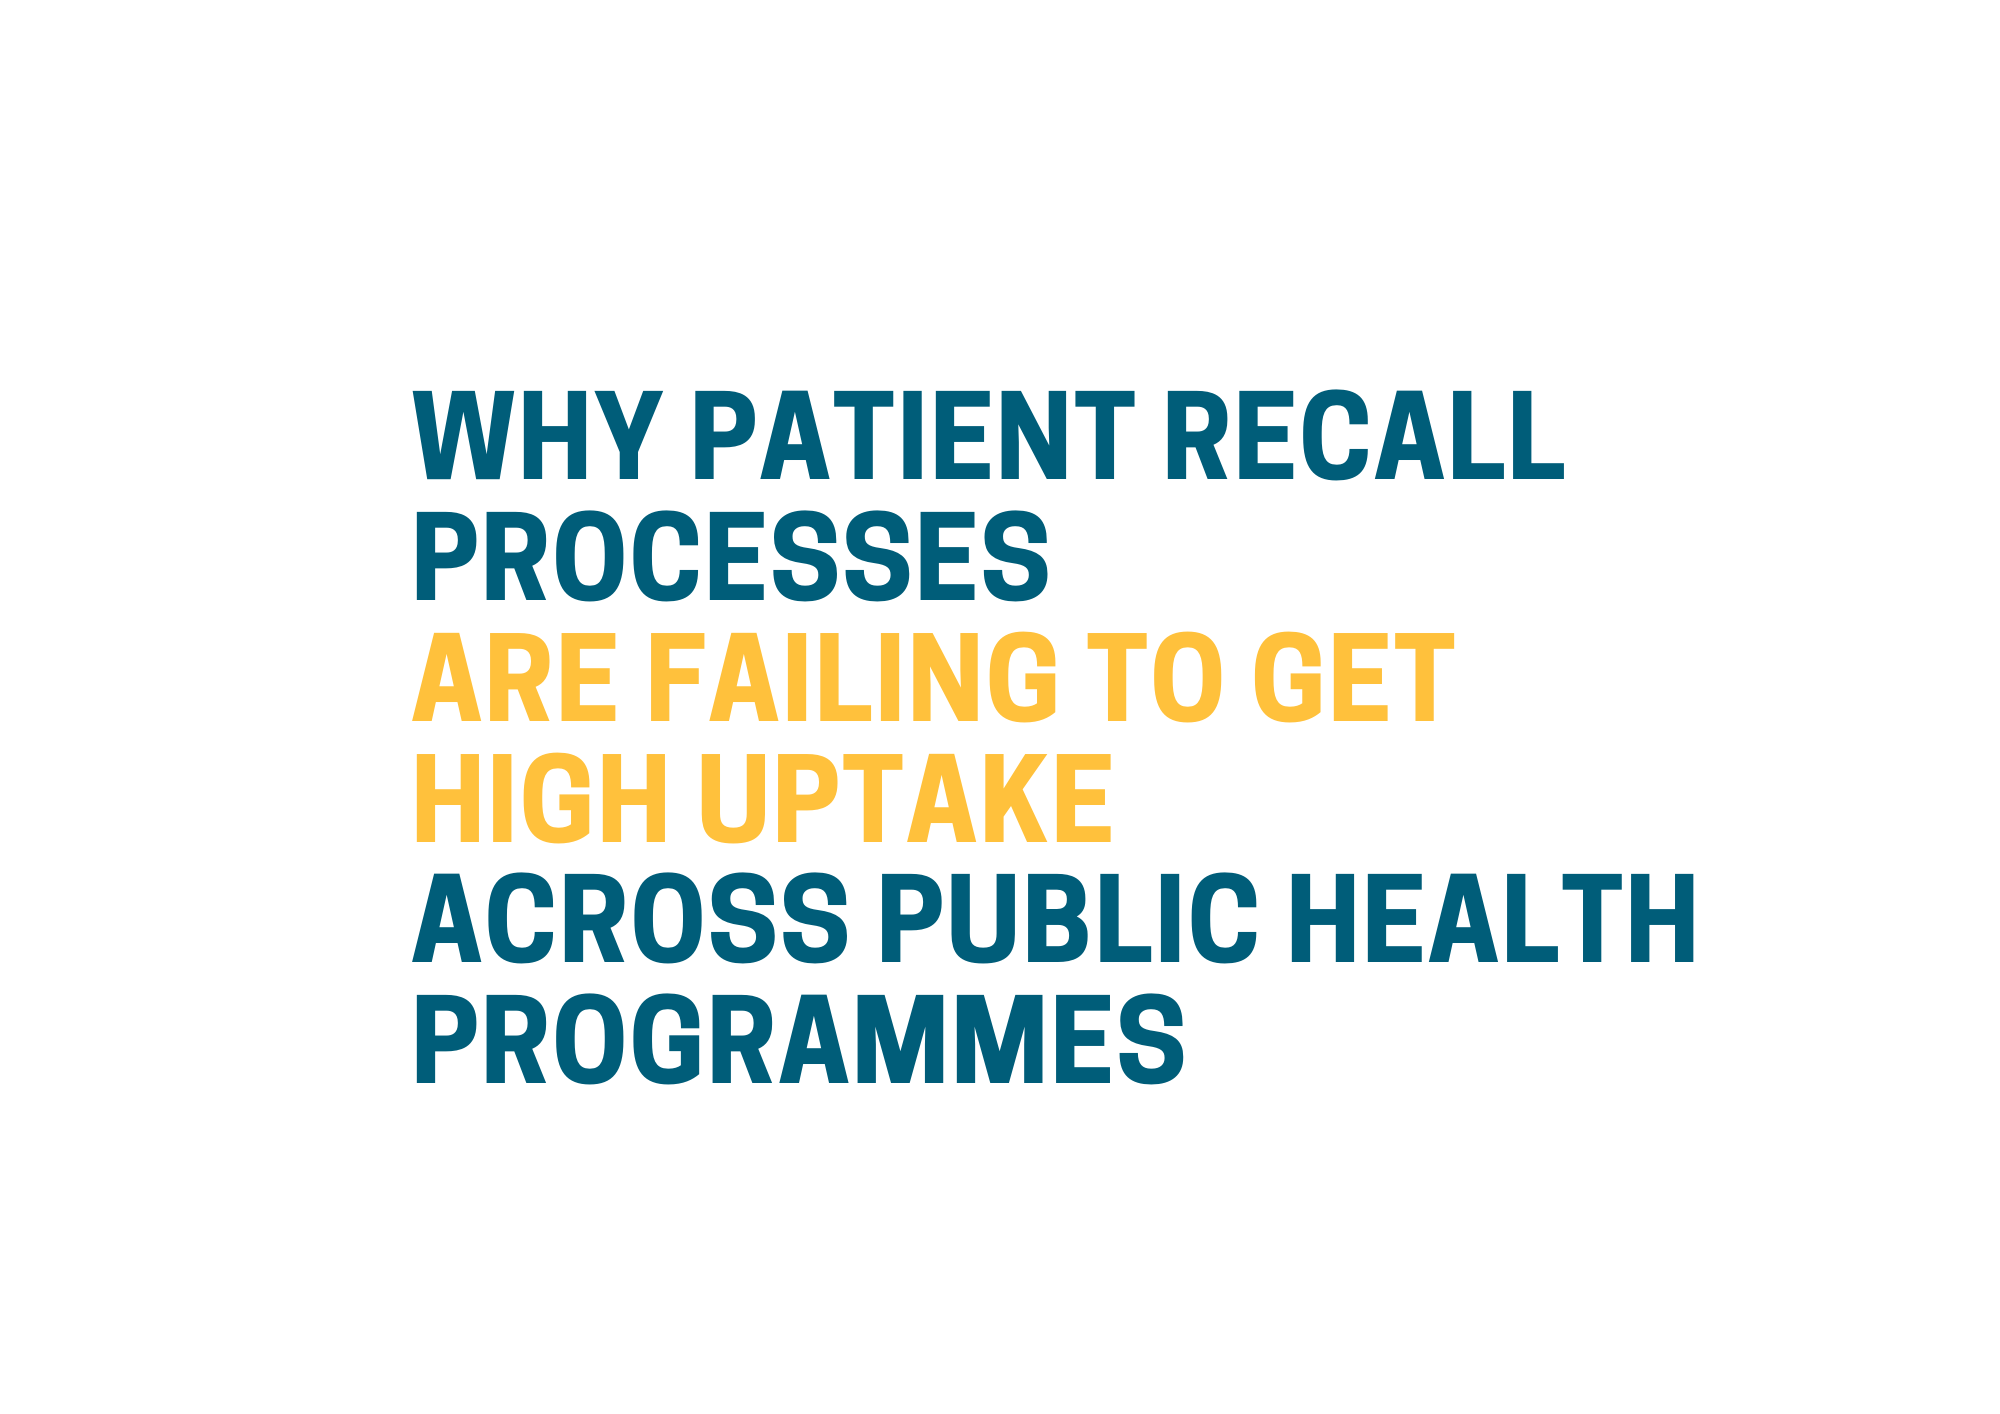 Why patient recall is failing